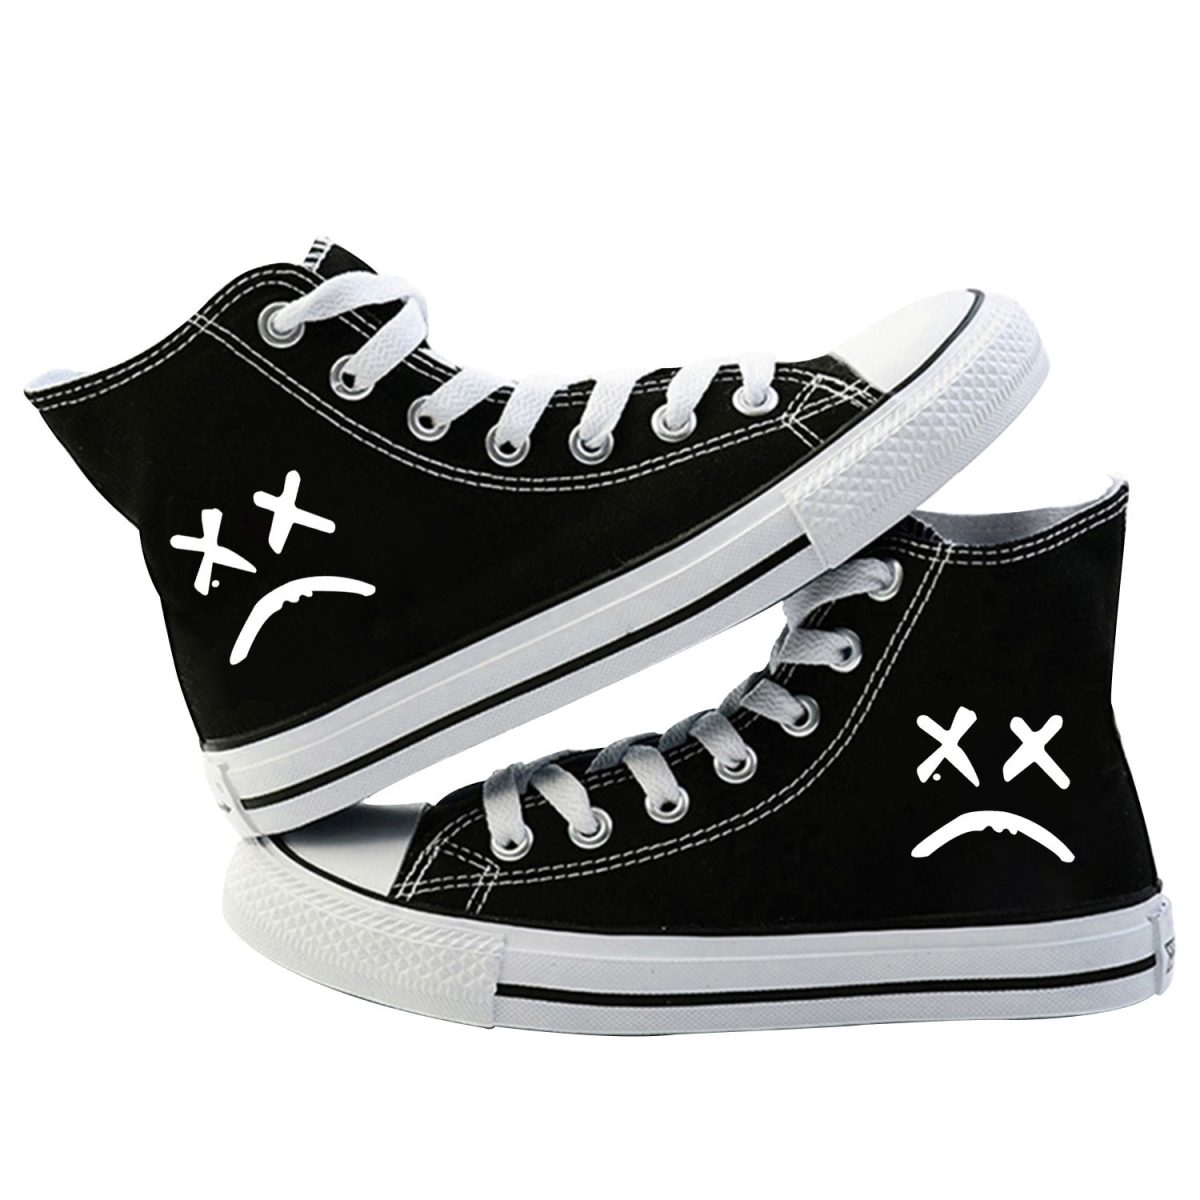 2020 Lil Peep Canvas Shoes For Women Causal High Heel Lace Up Spring Men Shoes Kpop Print Sneaker Vulcanize Sneakers Shoes